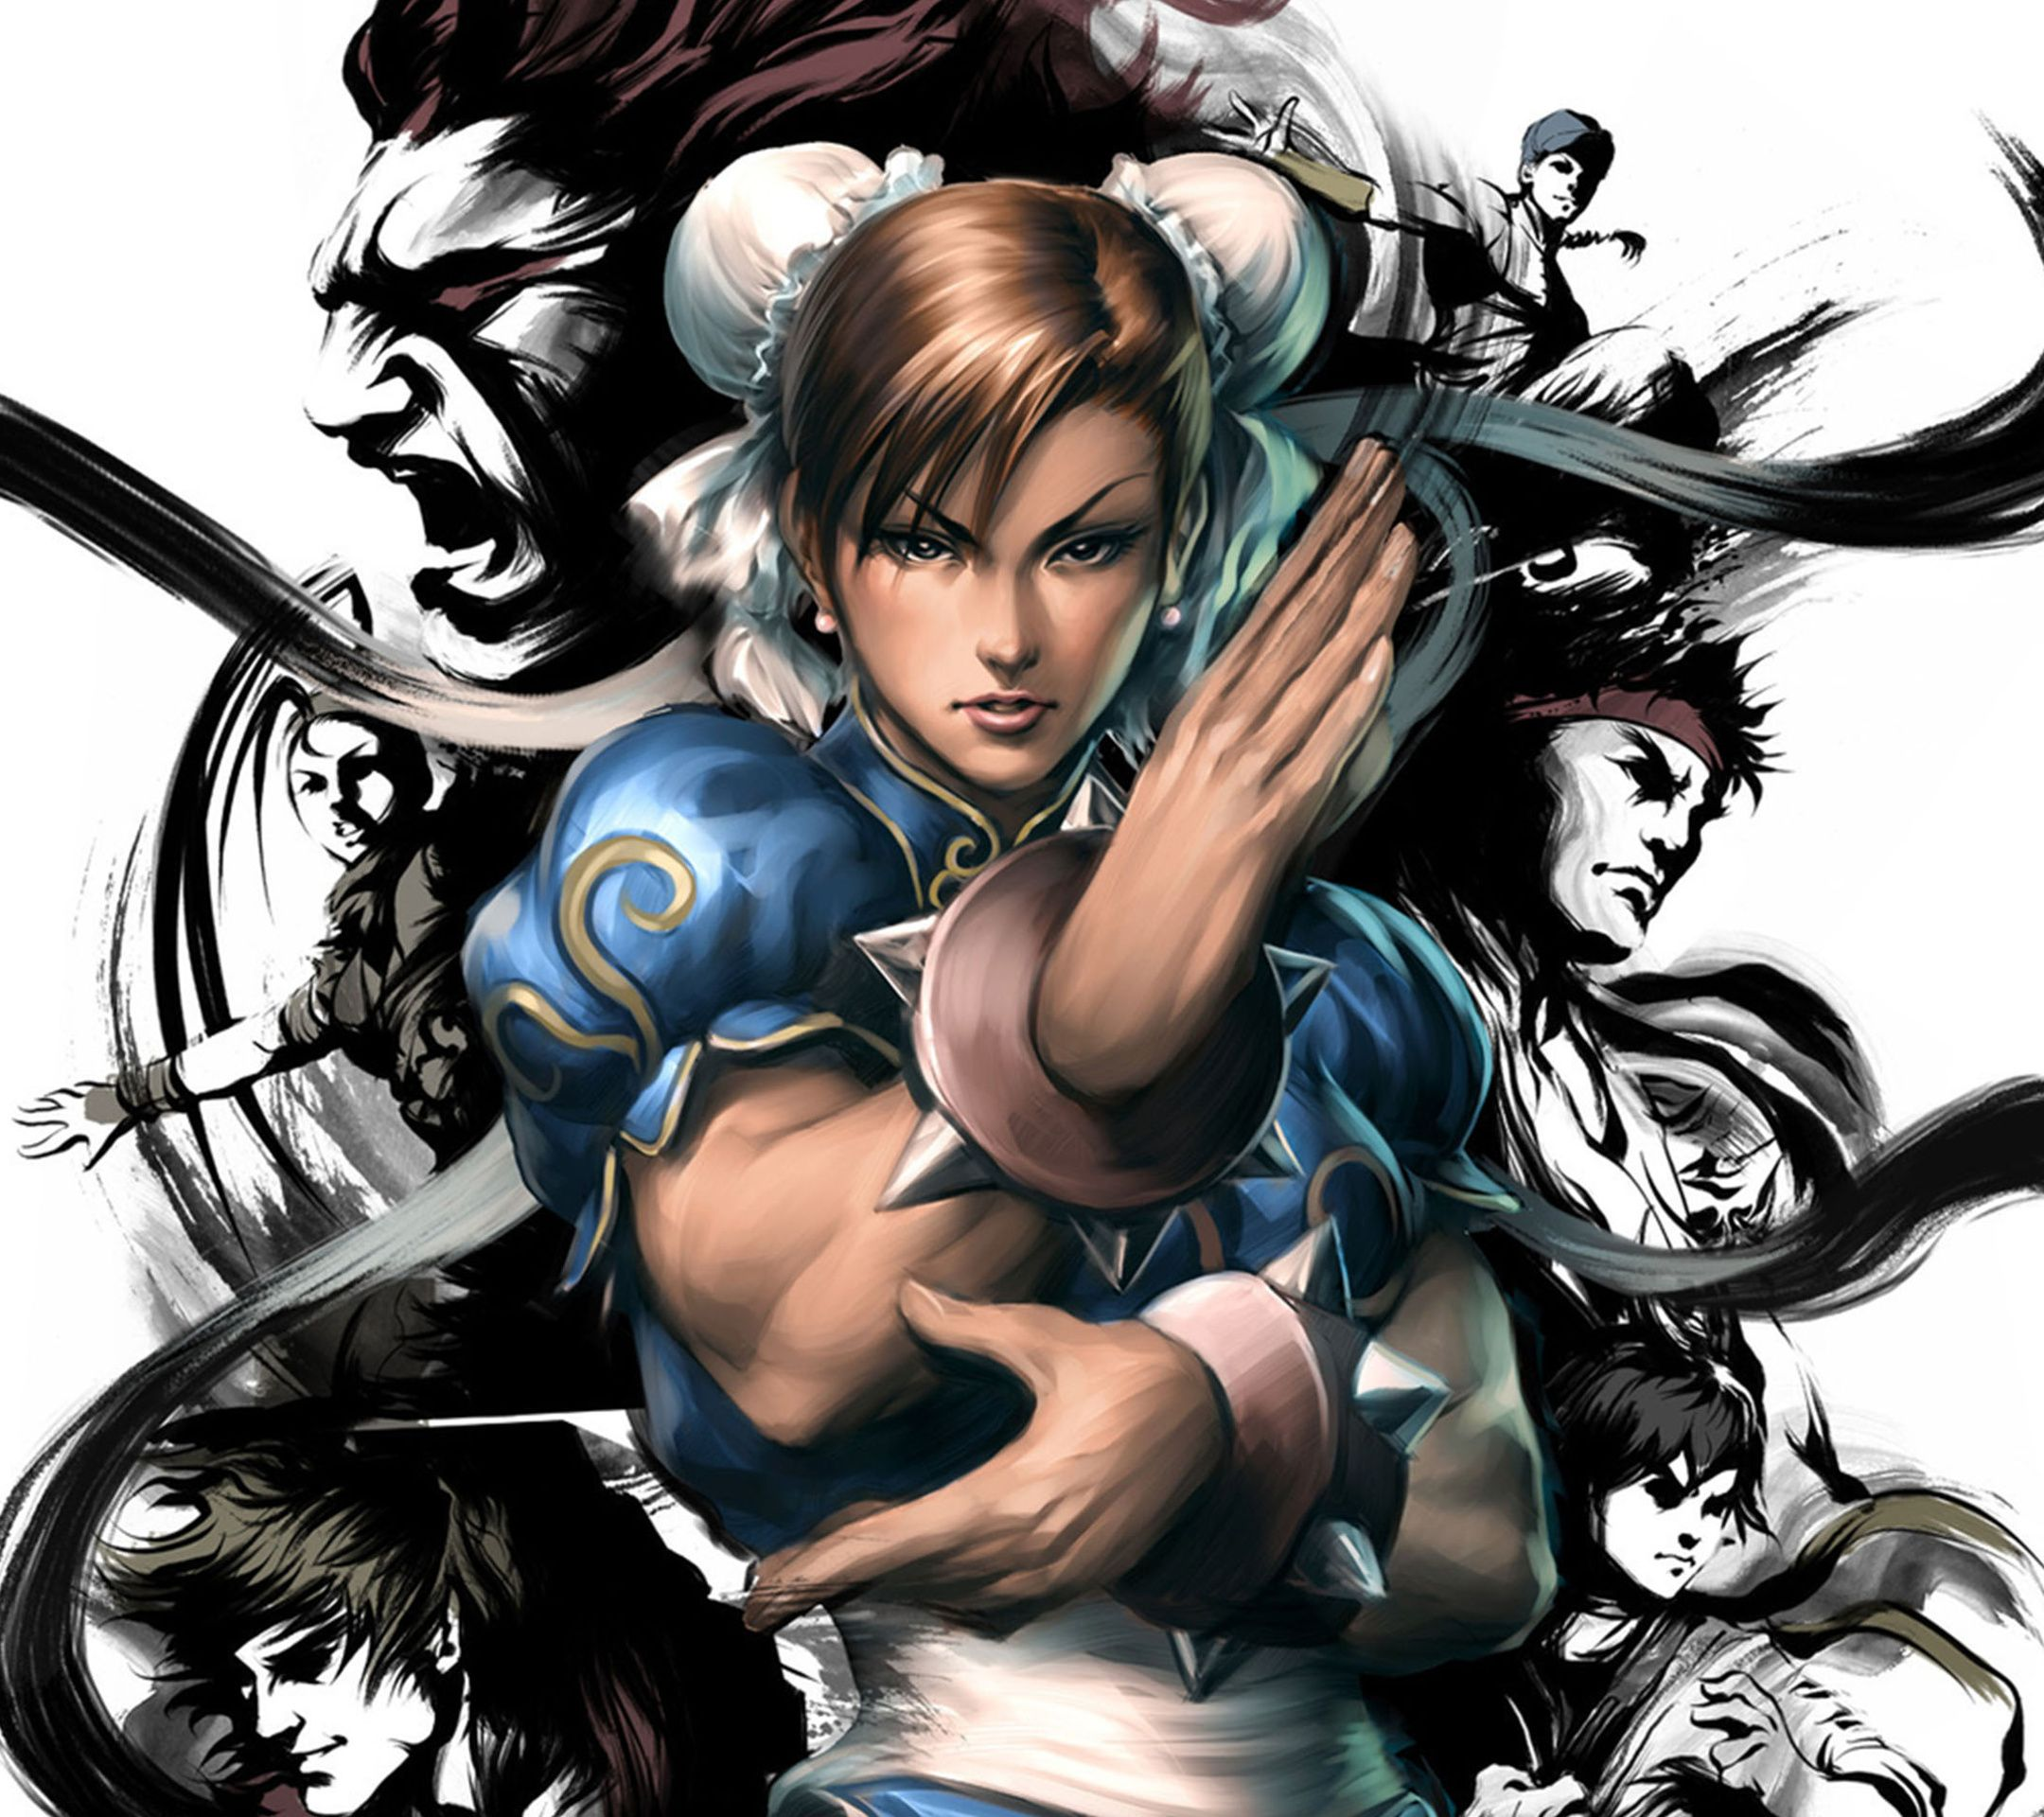 Chun Li Street Fighter Tap To See More Of The Top